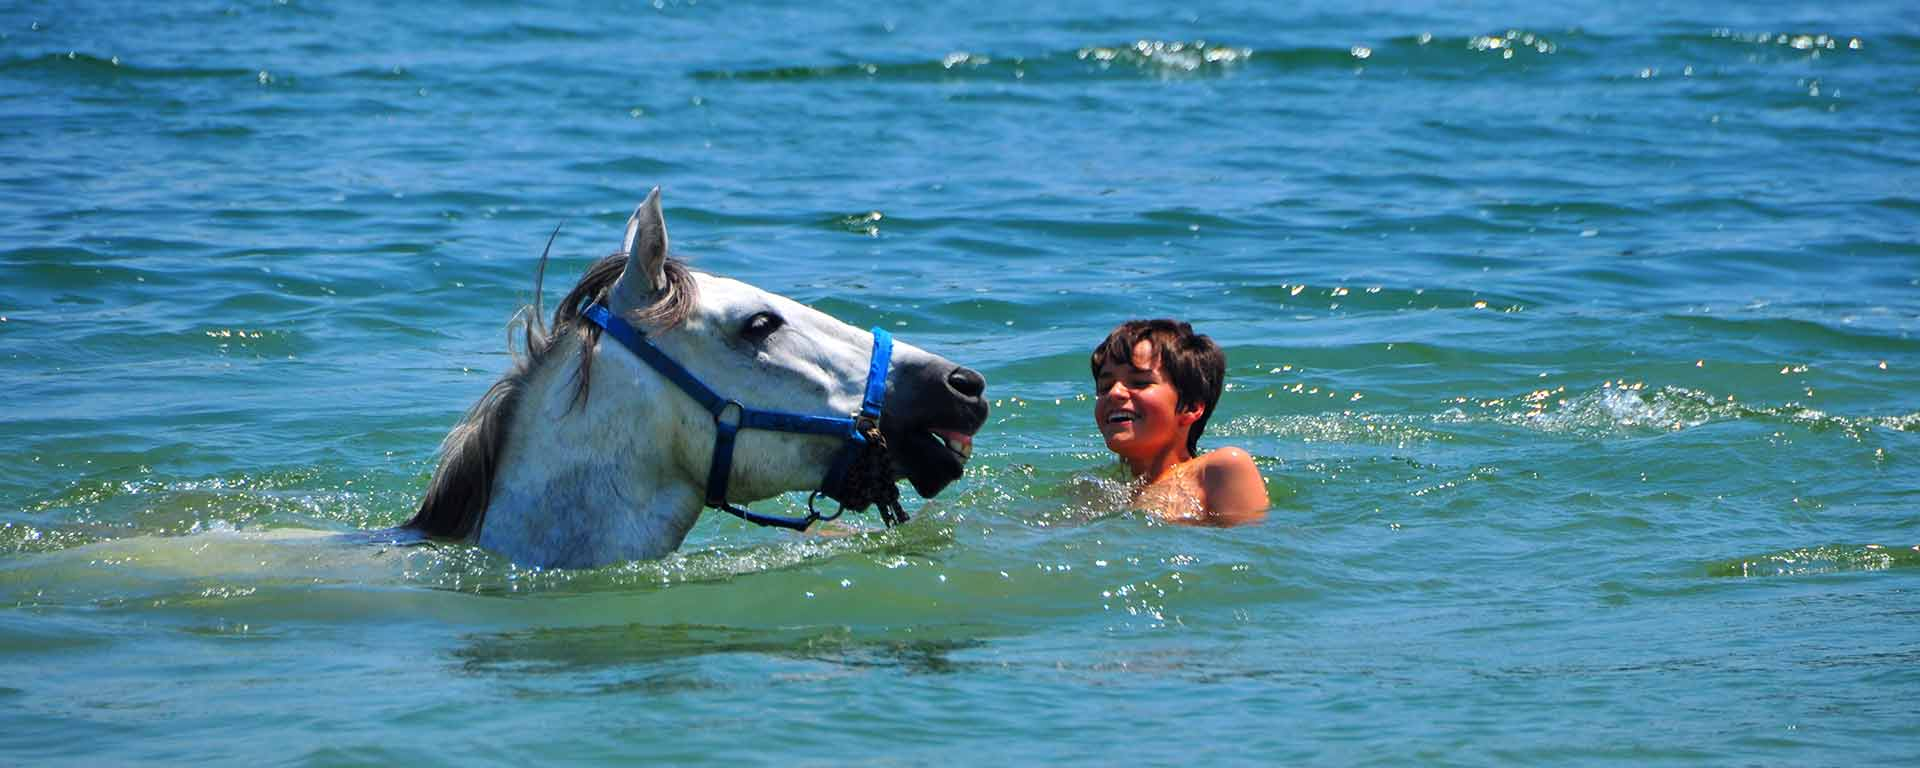 Catalonia on horseback – Swimming with horses